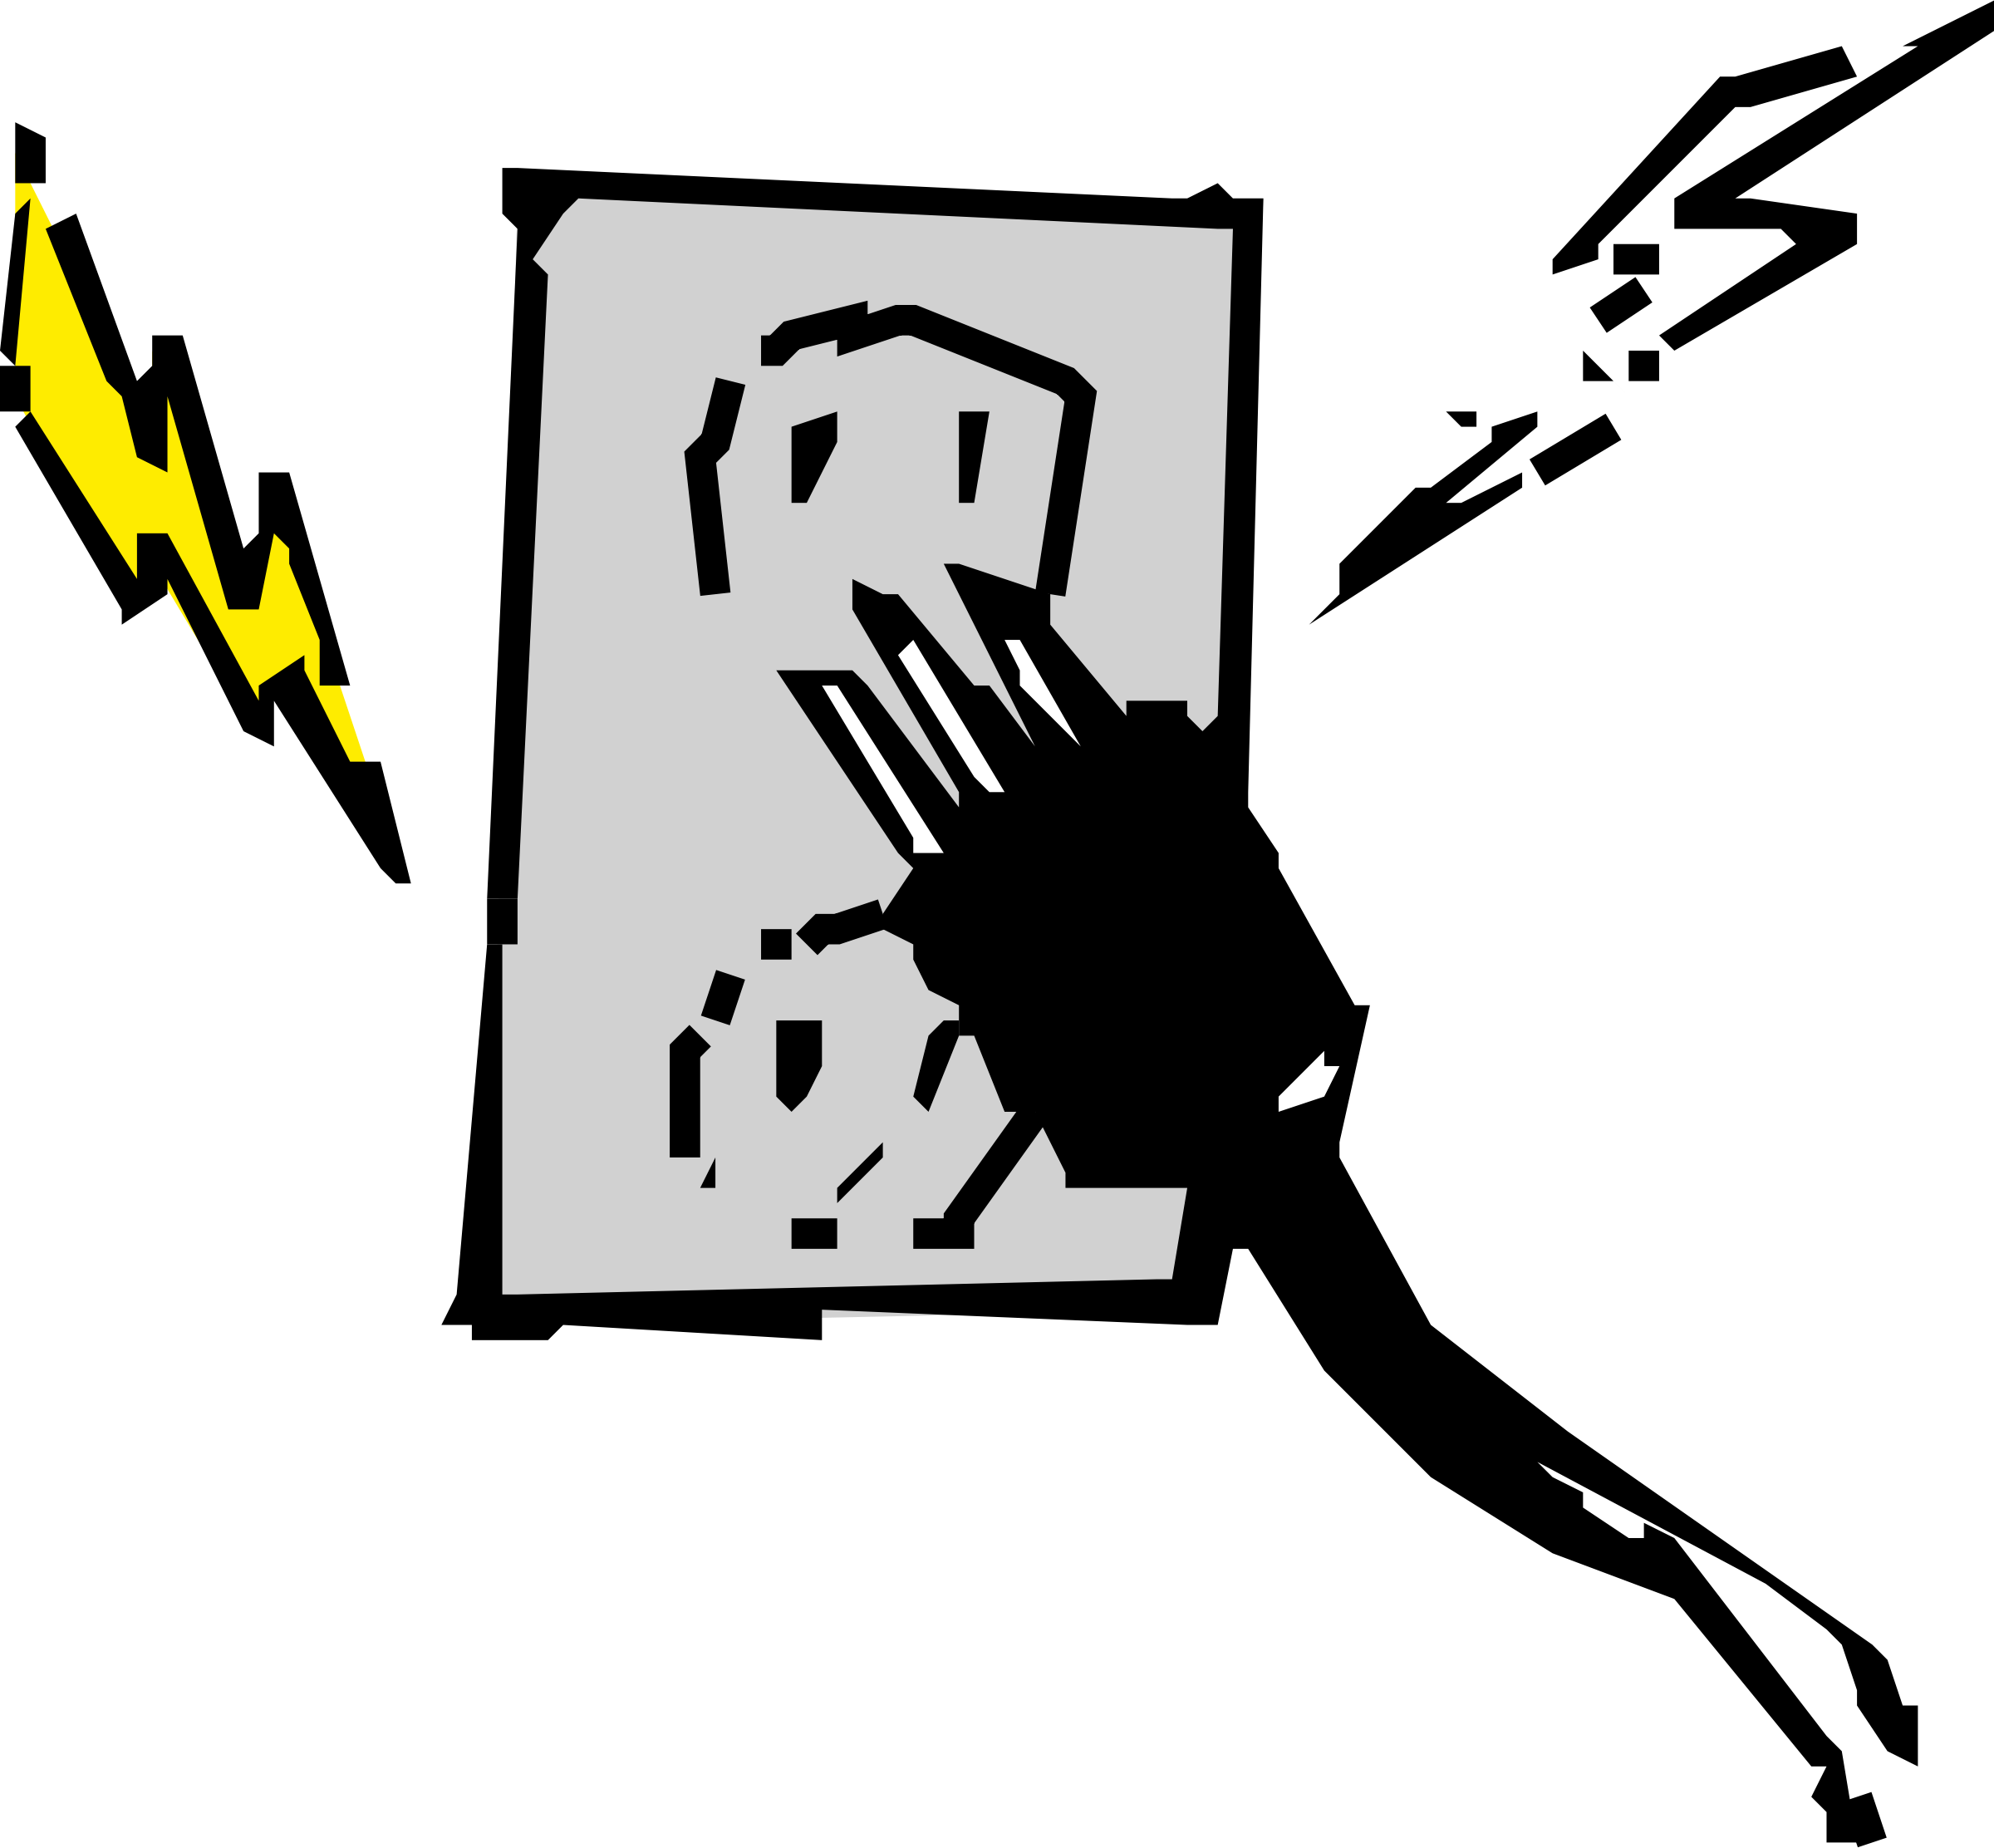 Electrical clipart electrical logo, Electrical electrical